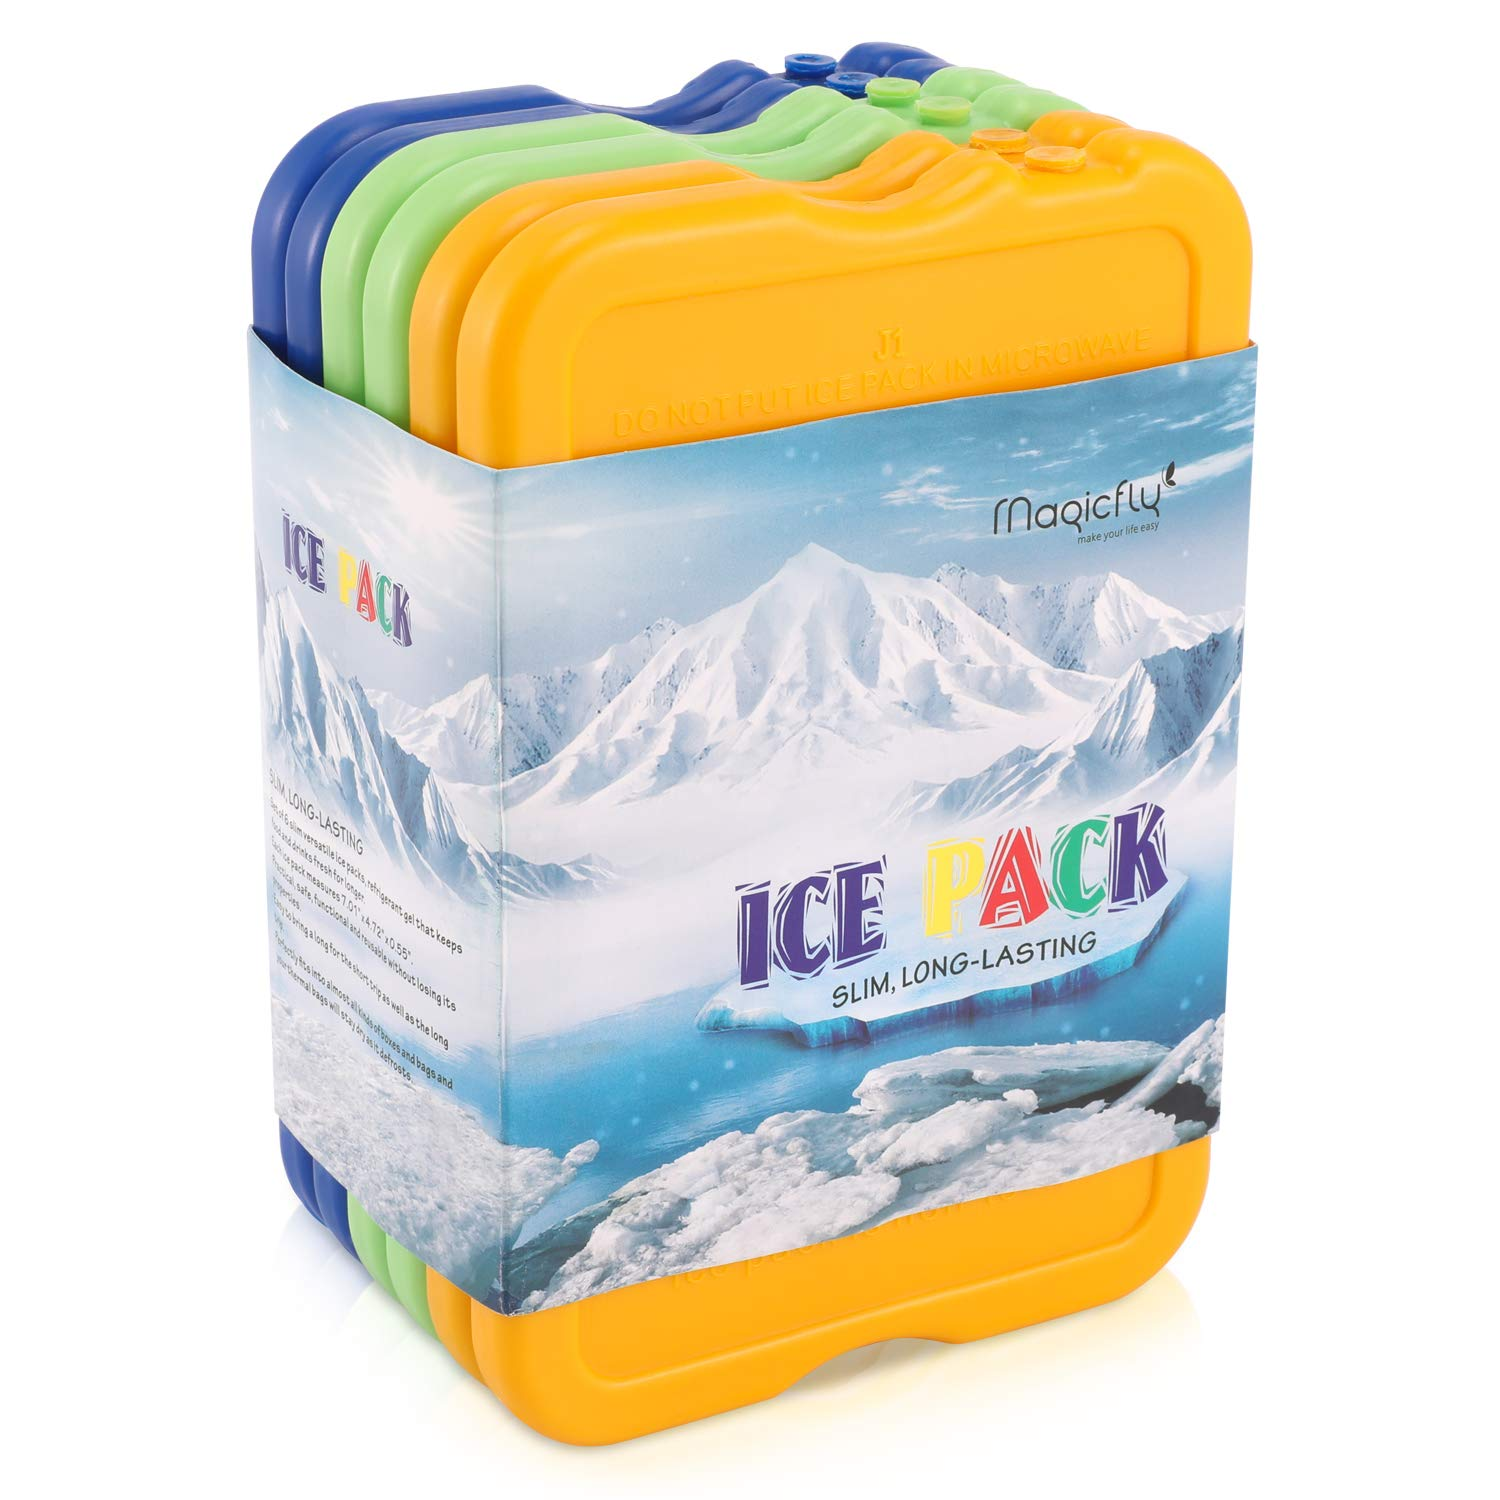 Lunch Ice Pack, Magicfly Set of 6 Reusable lunch Freezer Pack for Coolers, Larger Size with 7x4.7x0.5 Inches, Long Lasting Cool Cooler Slim Ice Pack for Lunch Box